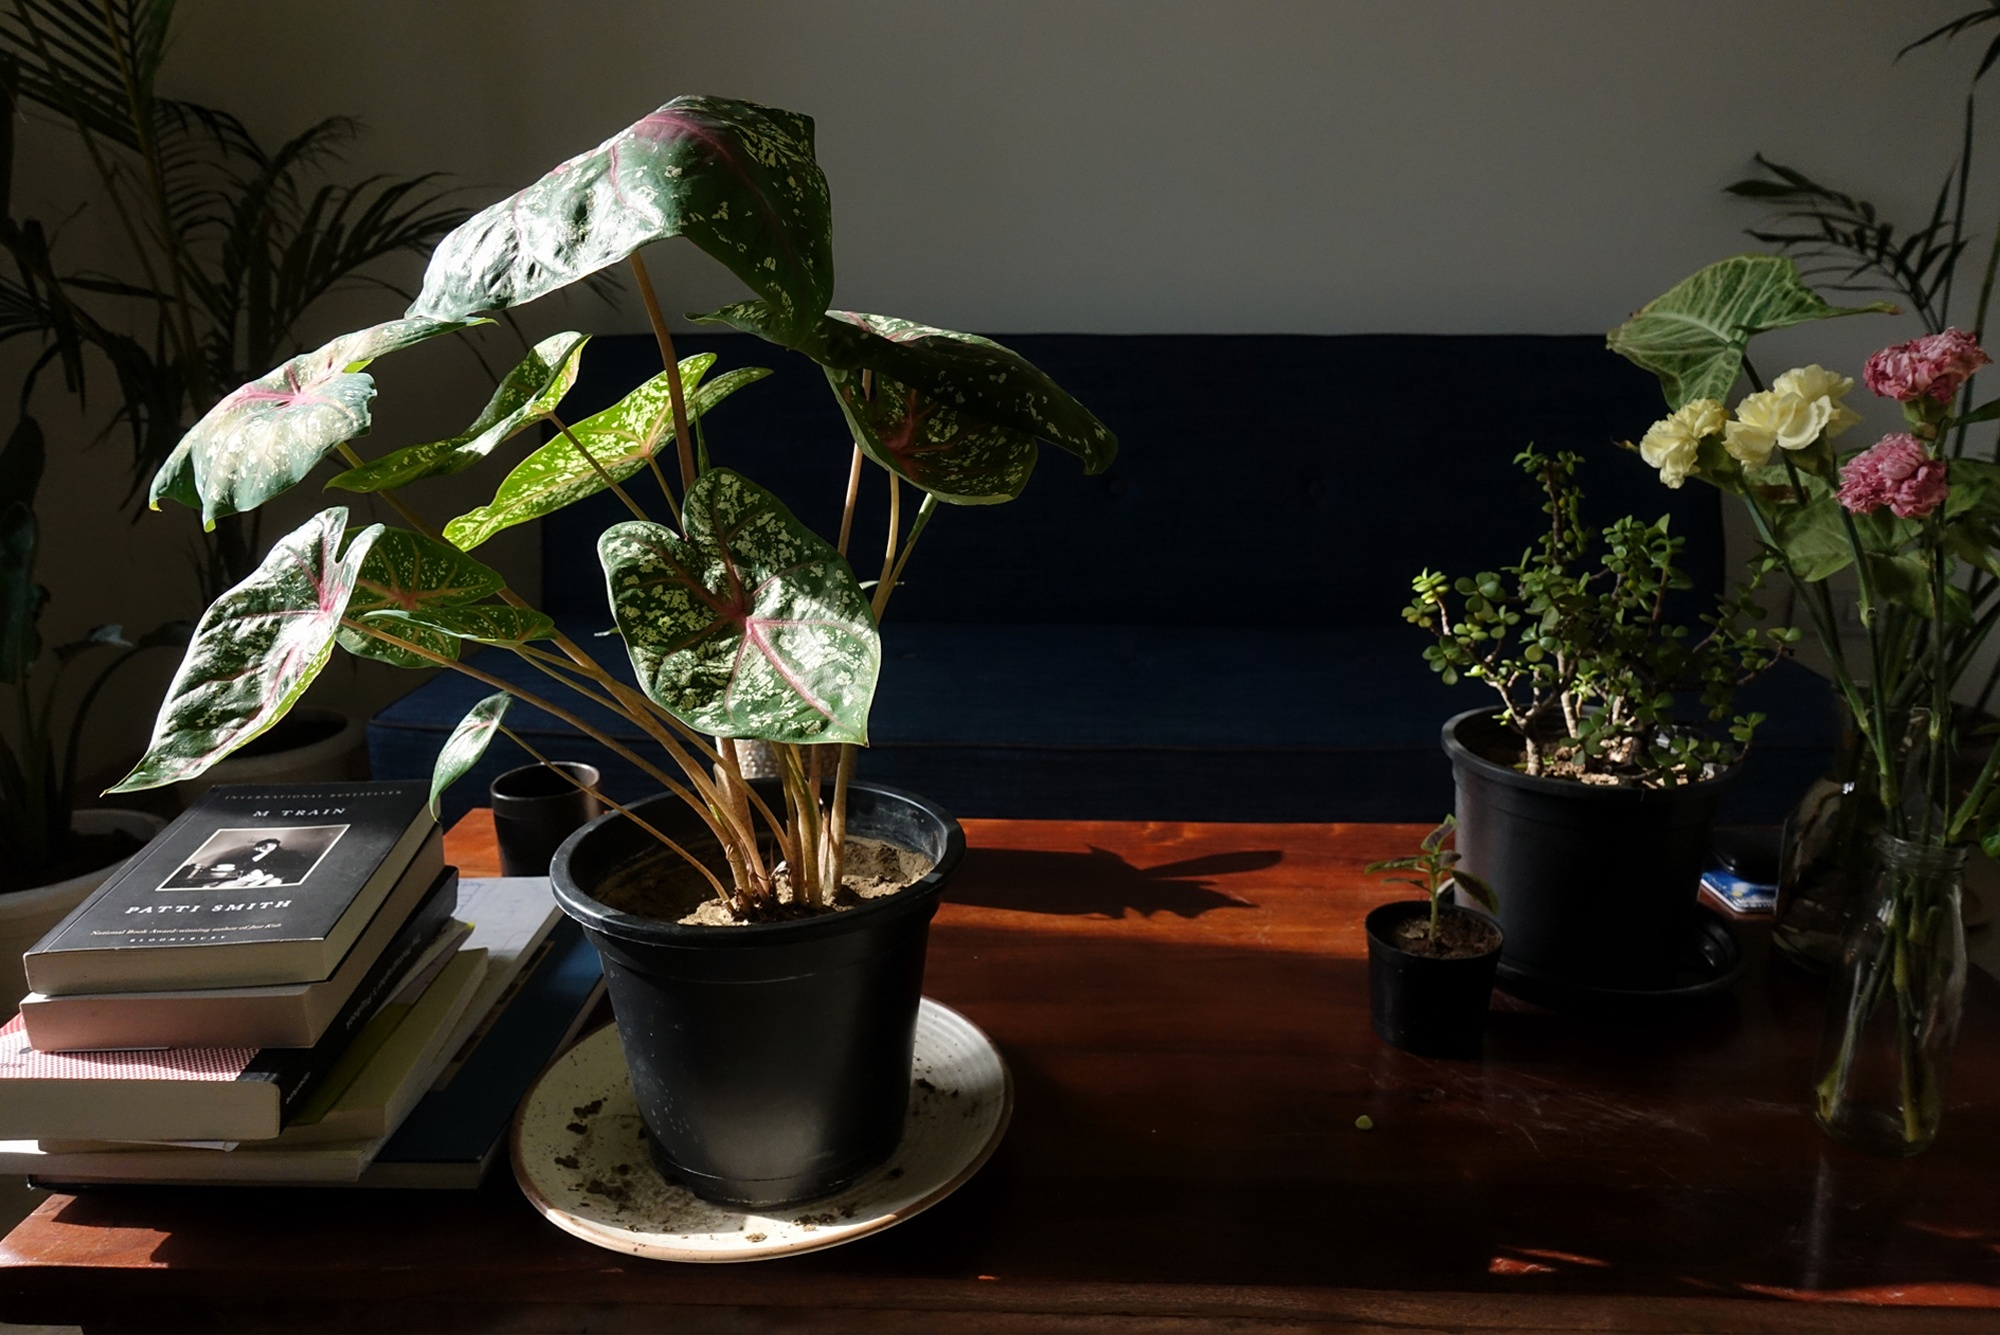 Menty_I_Brought_Home_A_New_Plant_4